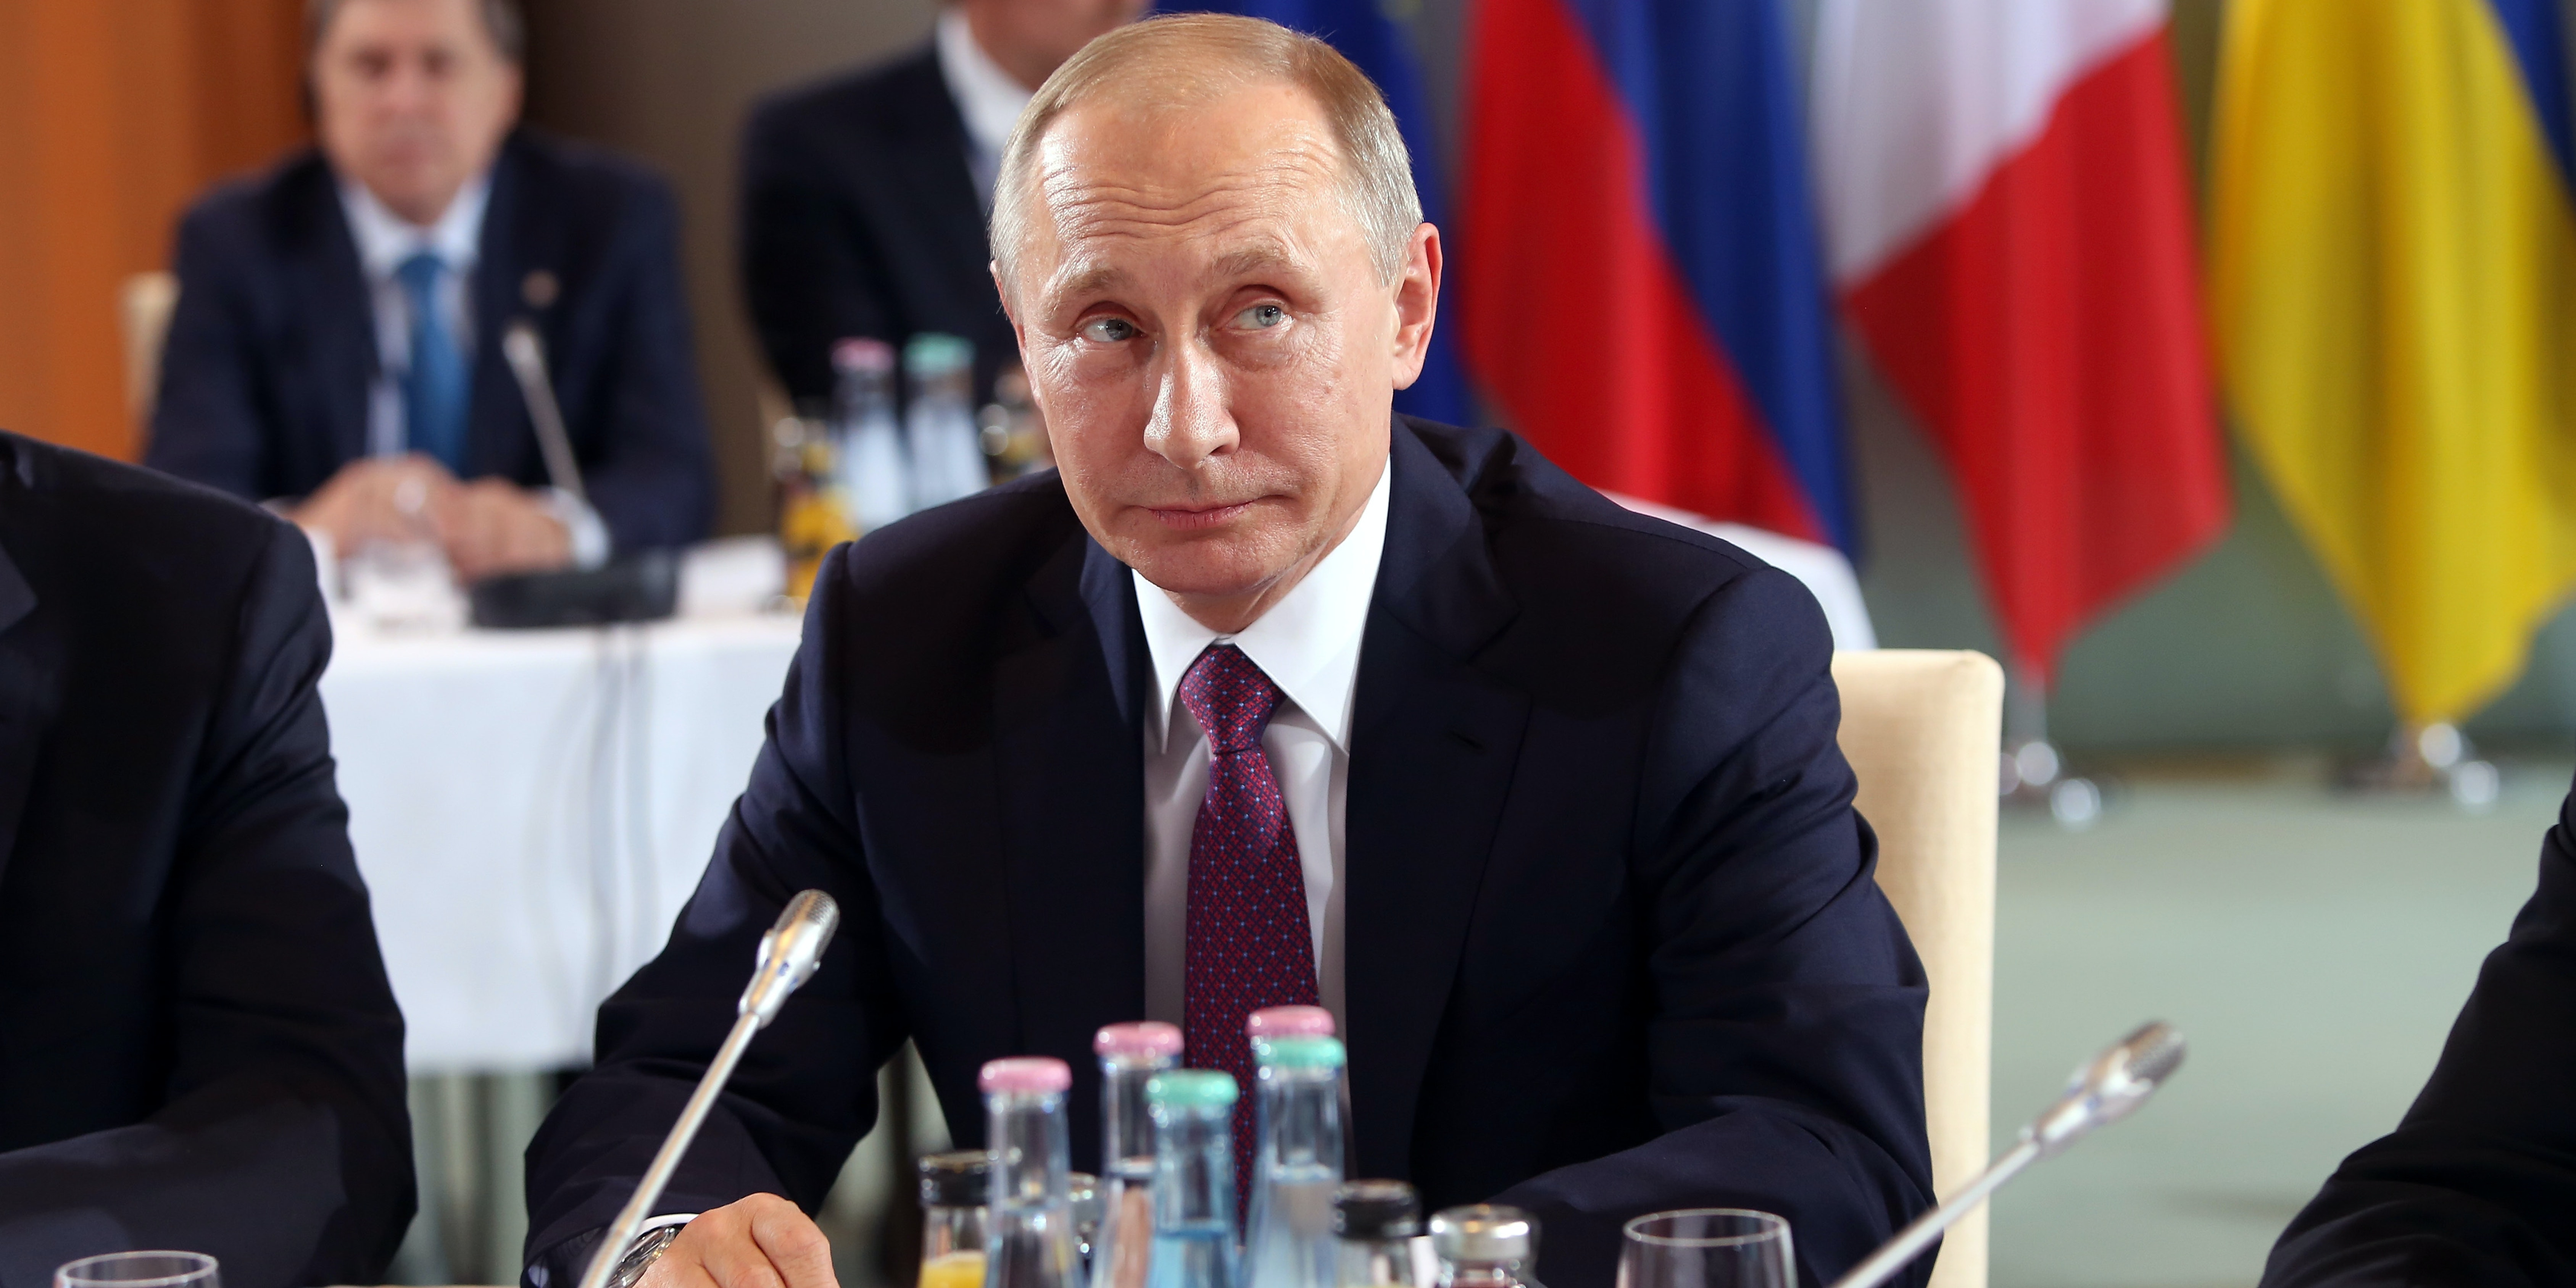 Russian President Vladimir Putin attends a meeting to discuss the Ukrainian peace process at the German federal Chancellery on October 19, 2016 in Berlin, Germany. The leaders of Russia, Ukraine, France and Germany, known as the Normandy Four, met in Berlin to discuss implementation of the peace plan known as the Minsk Protocol, a roadmap for resolving the conflict in Ukraine after Russian forces invaded in 2014 and annexed the peninsula of Crimea. The United States has threatened renewed sanctions on Russia if the country did not either implement the plan in the coming months or arrive at a plan on how to do so.